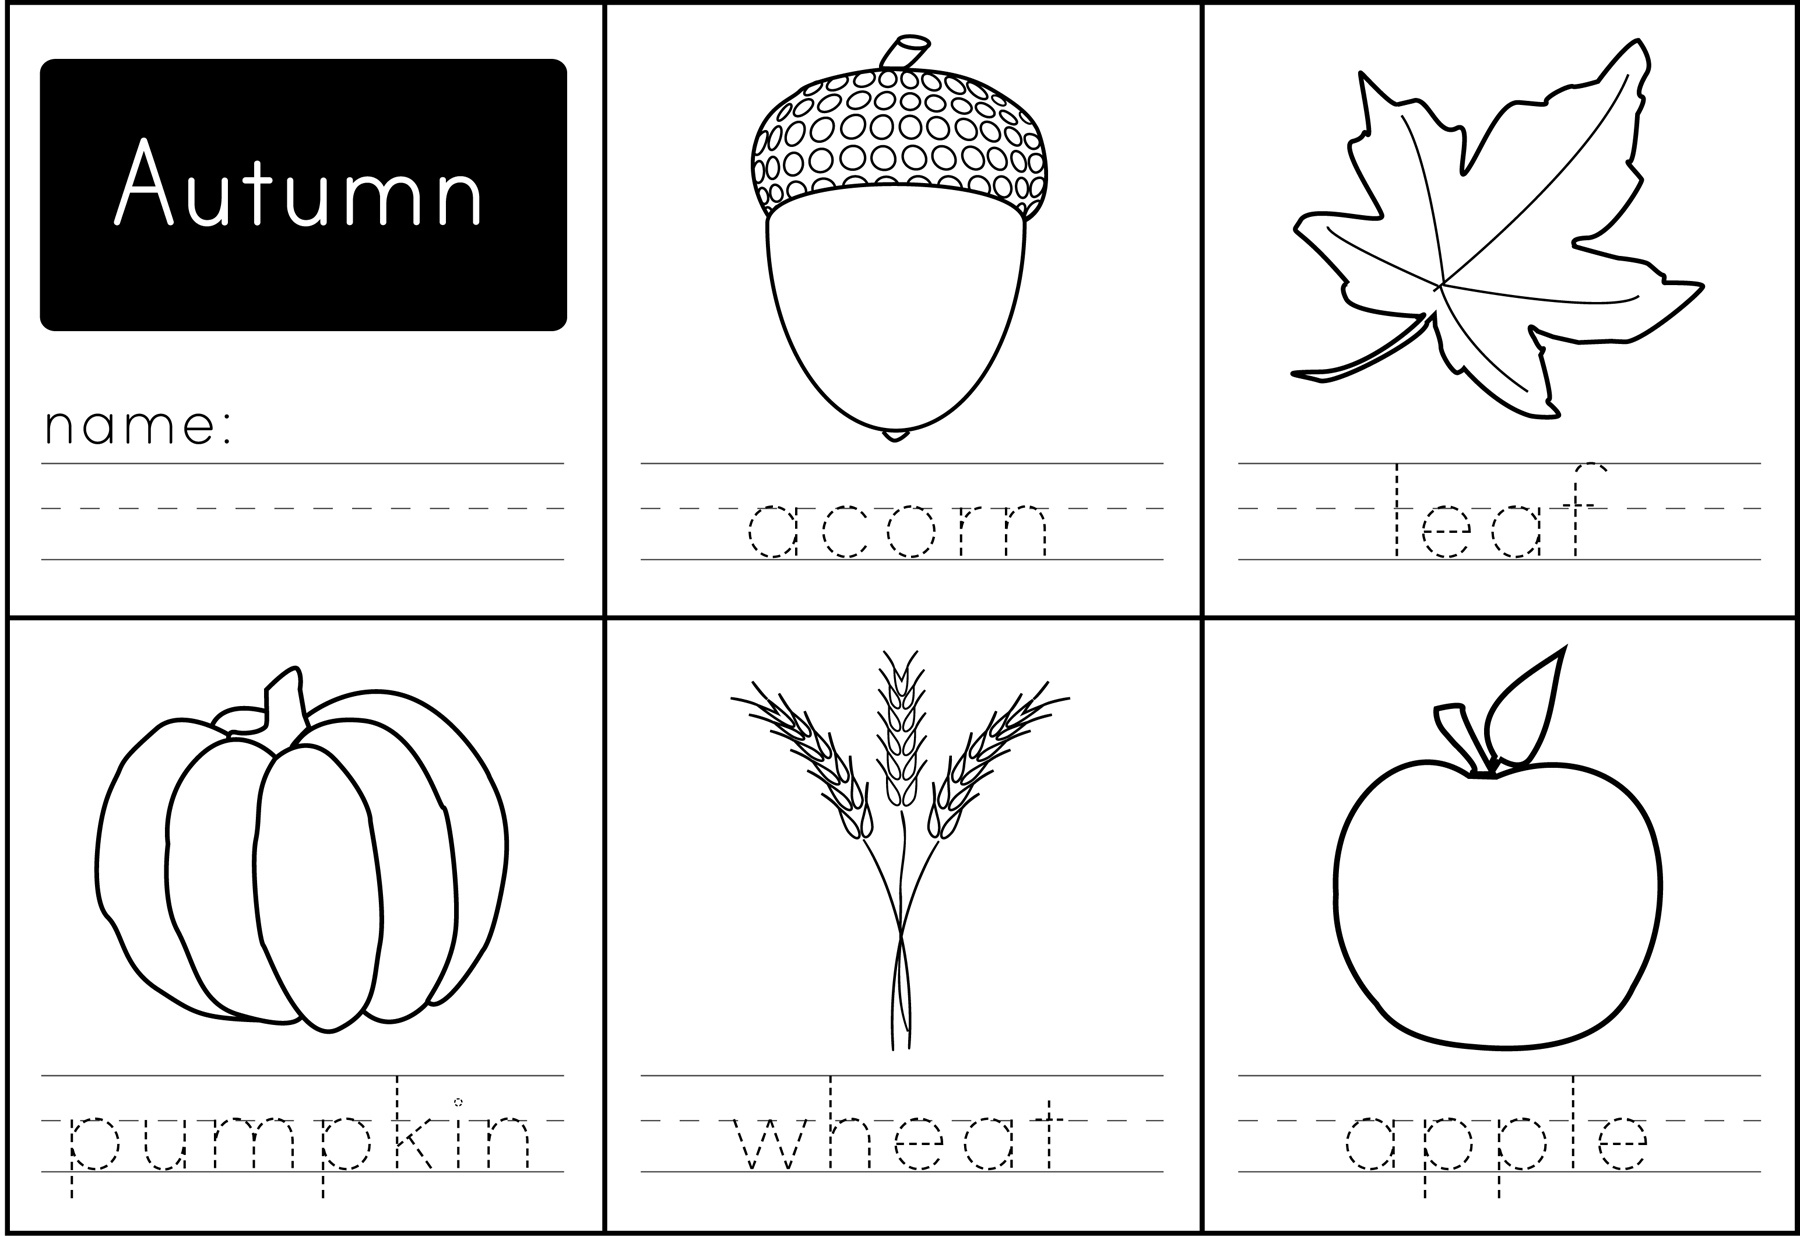 Free Printable: Autumn Words - Paging Supermom - Free Printable Autumn Worksheets